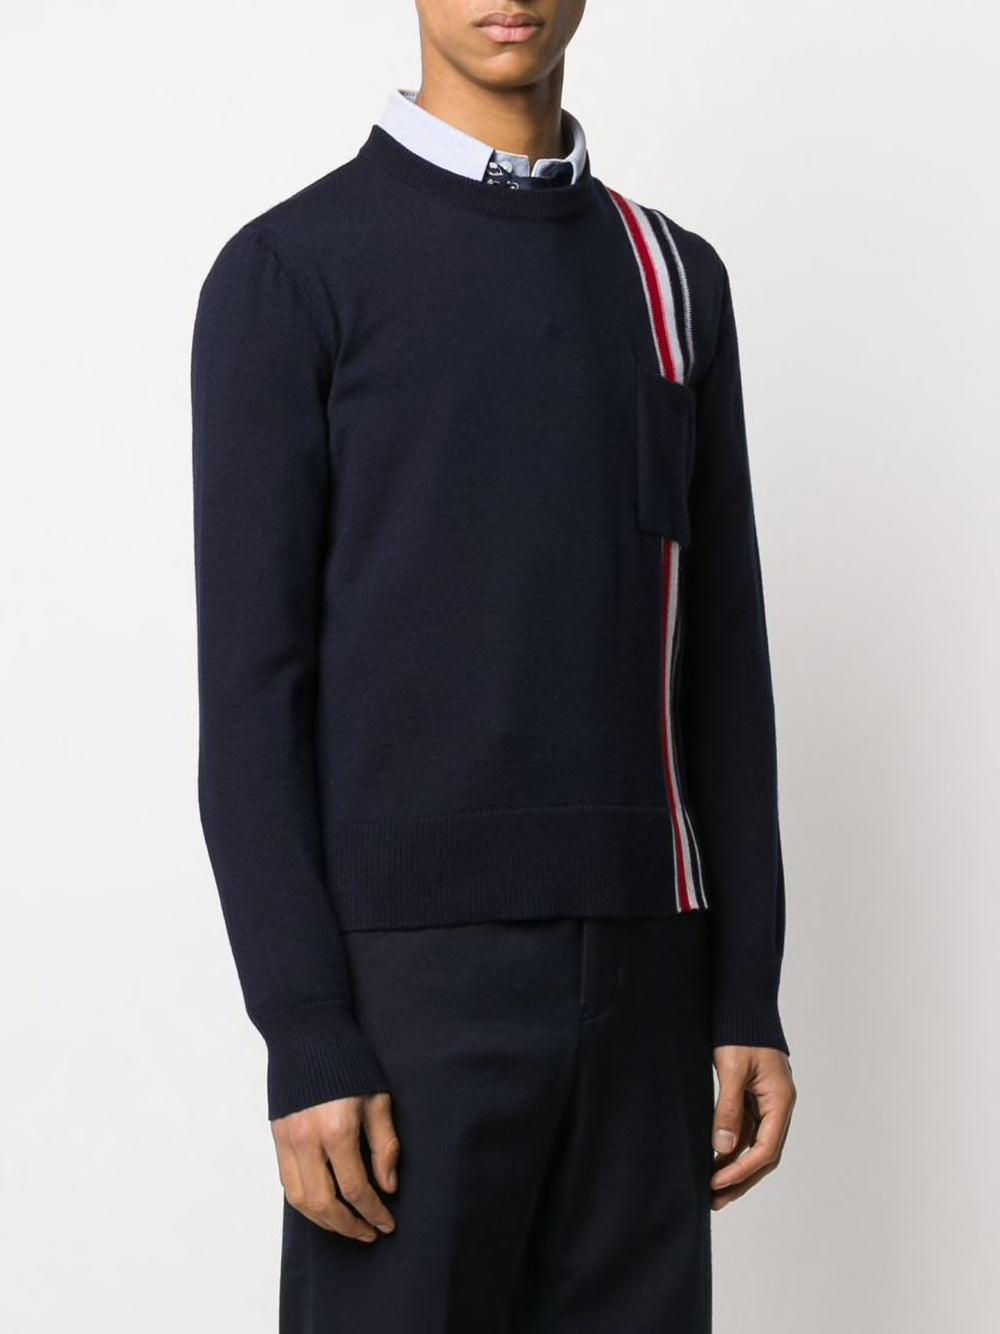 THOM BROWNE MEN JERSEY STITCH RELAXED FIT CREW NECK PULLOVER WITH RWB INTARSIA STRIPE IN FINE MERINO WOOL